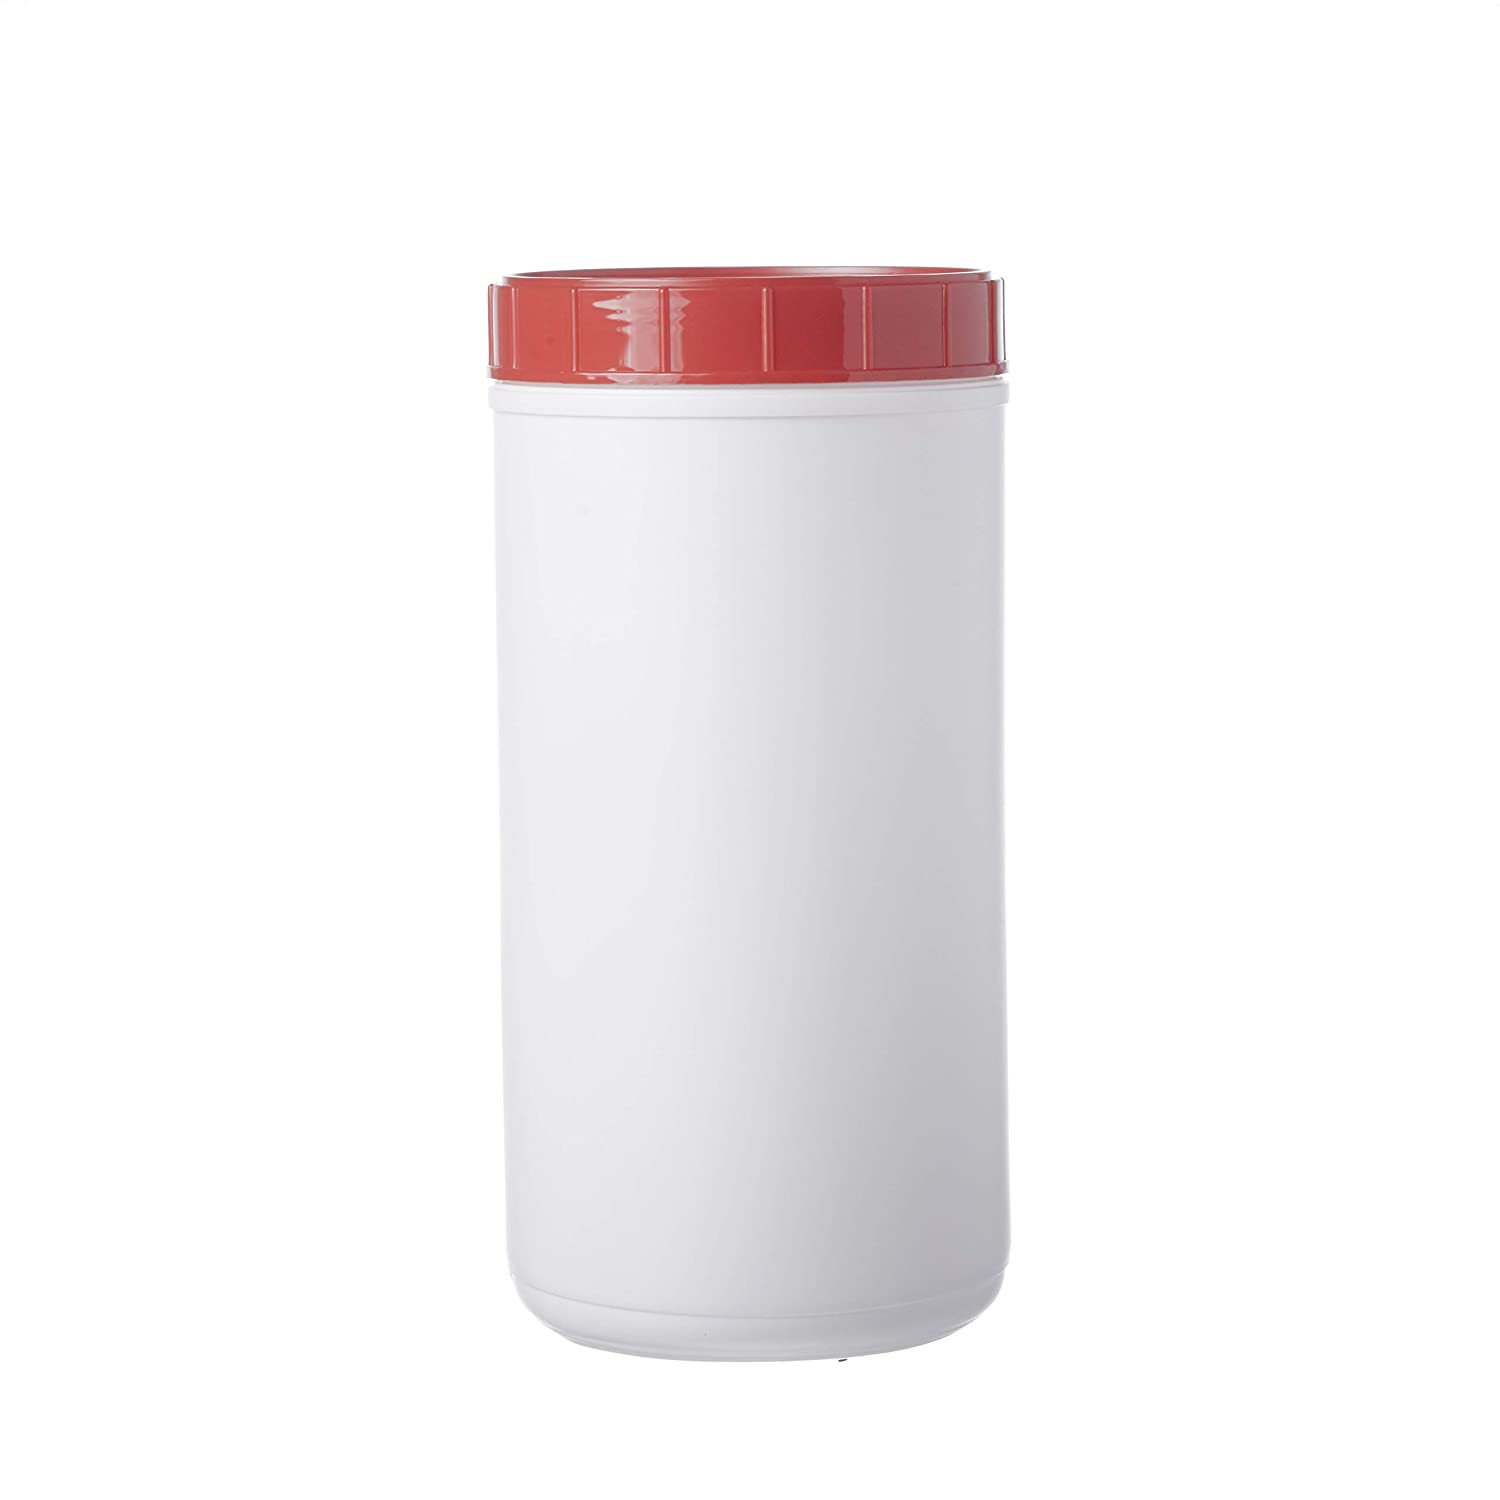 Consolidated Plastics Max 51% Bombing new work OFF 42598 HDPE White Canister Li Red